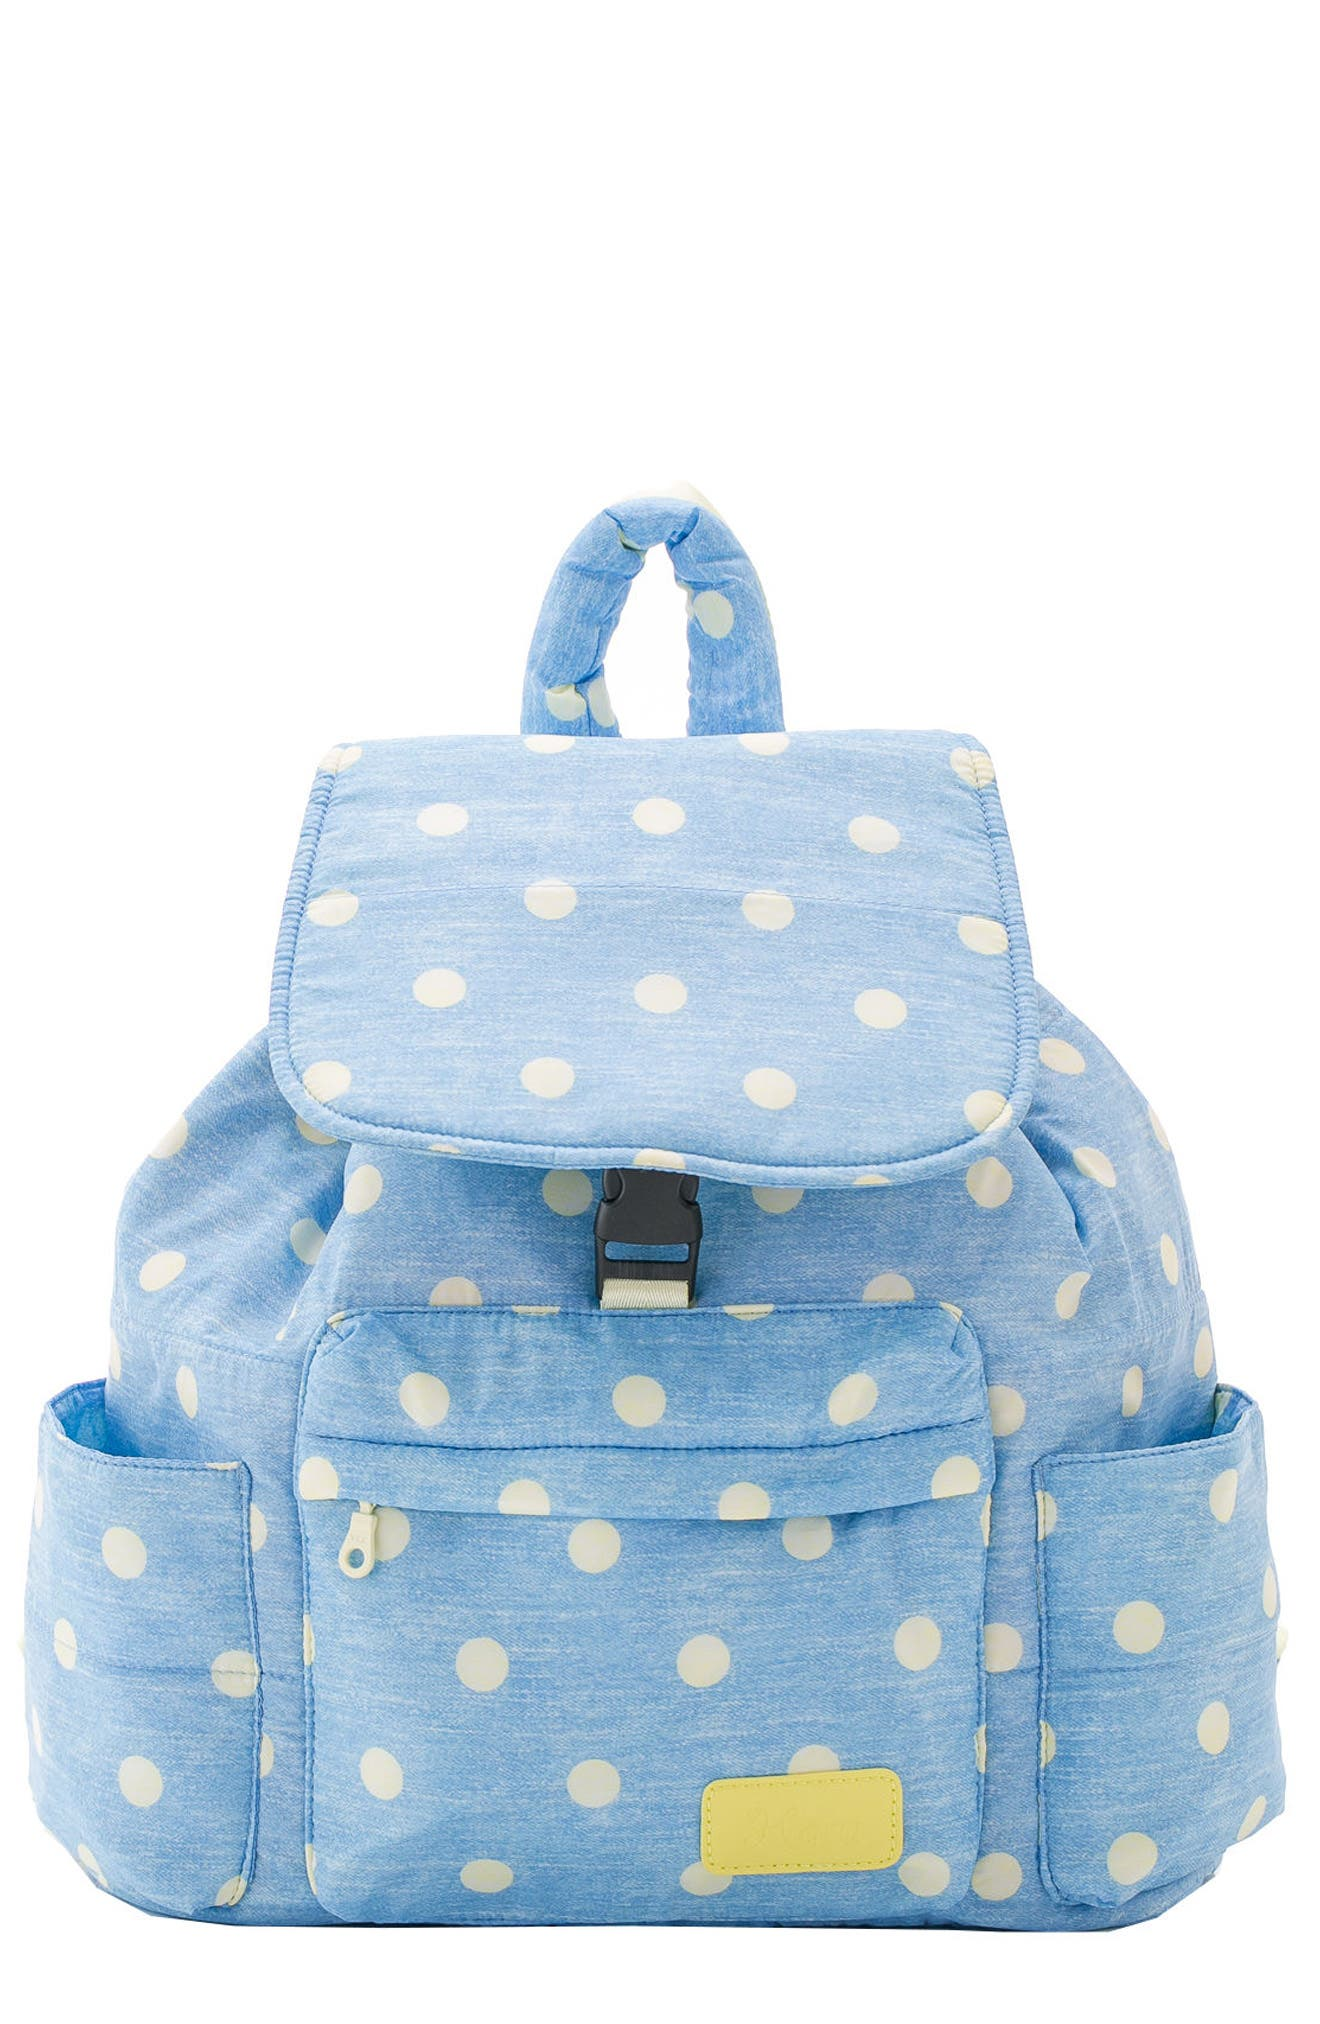 Print Water Repellent Diaper Backpack,                             Main thumbnail 1, color,                             Denim Yellow Dot